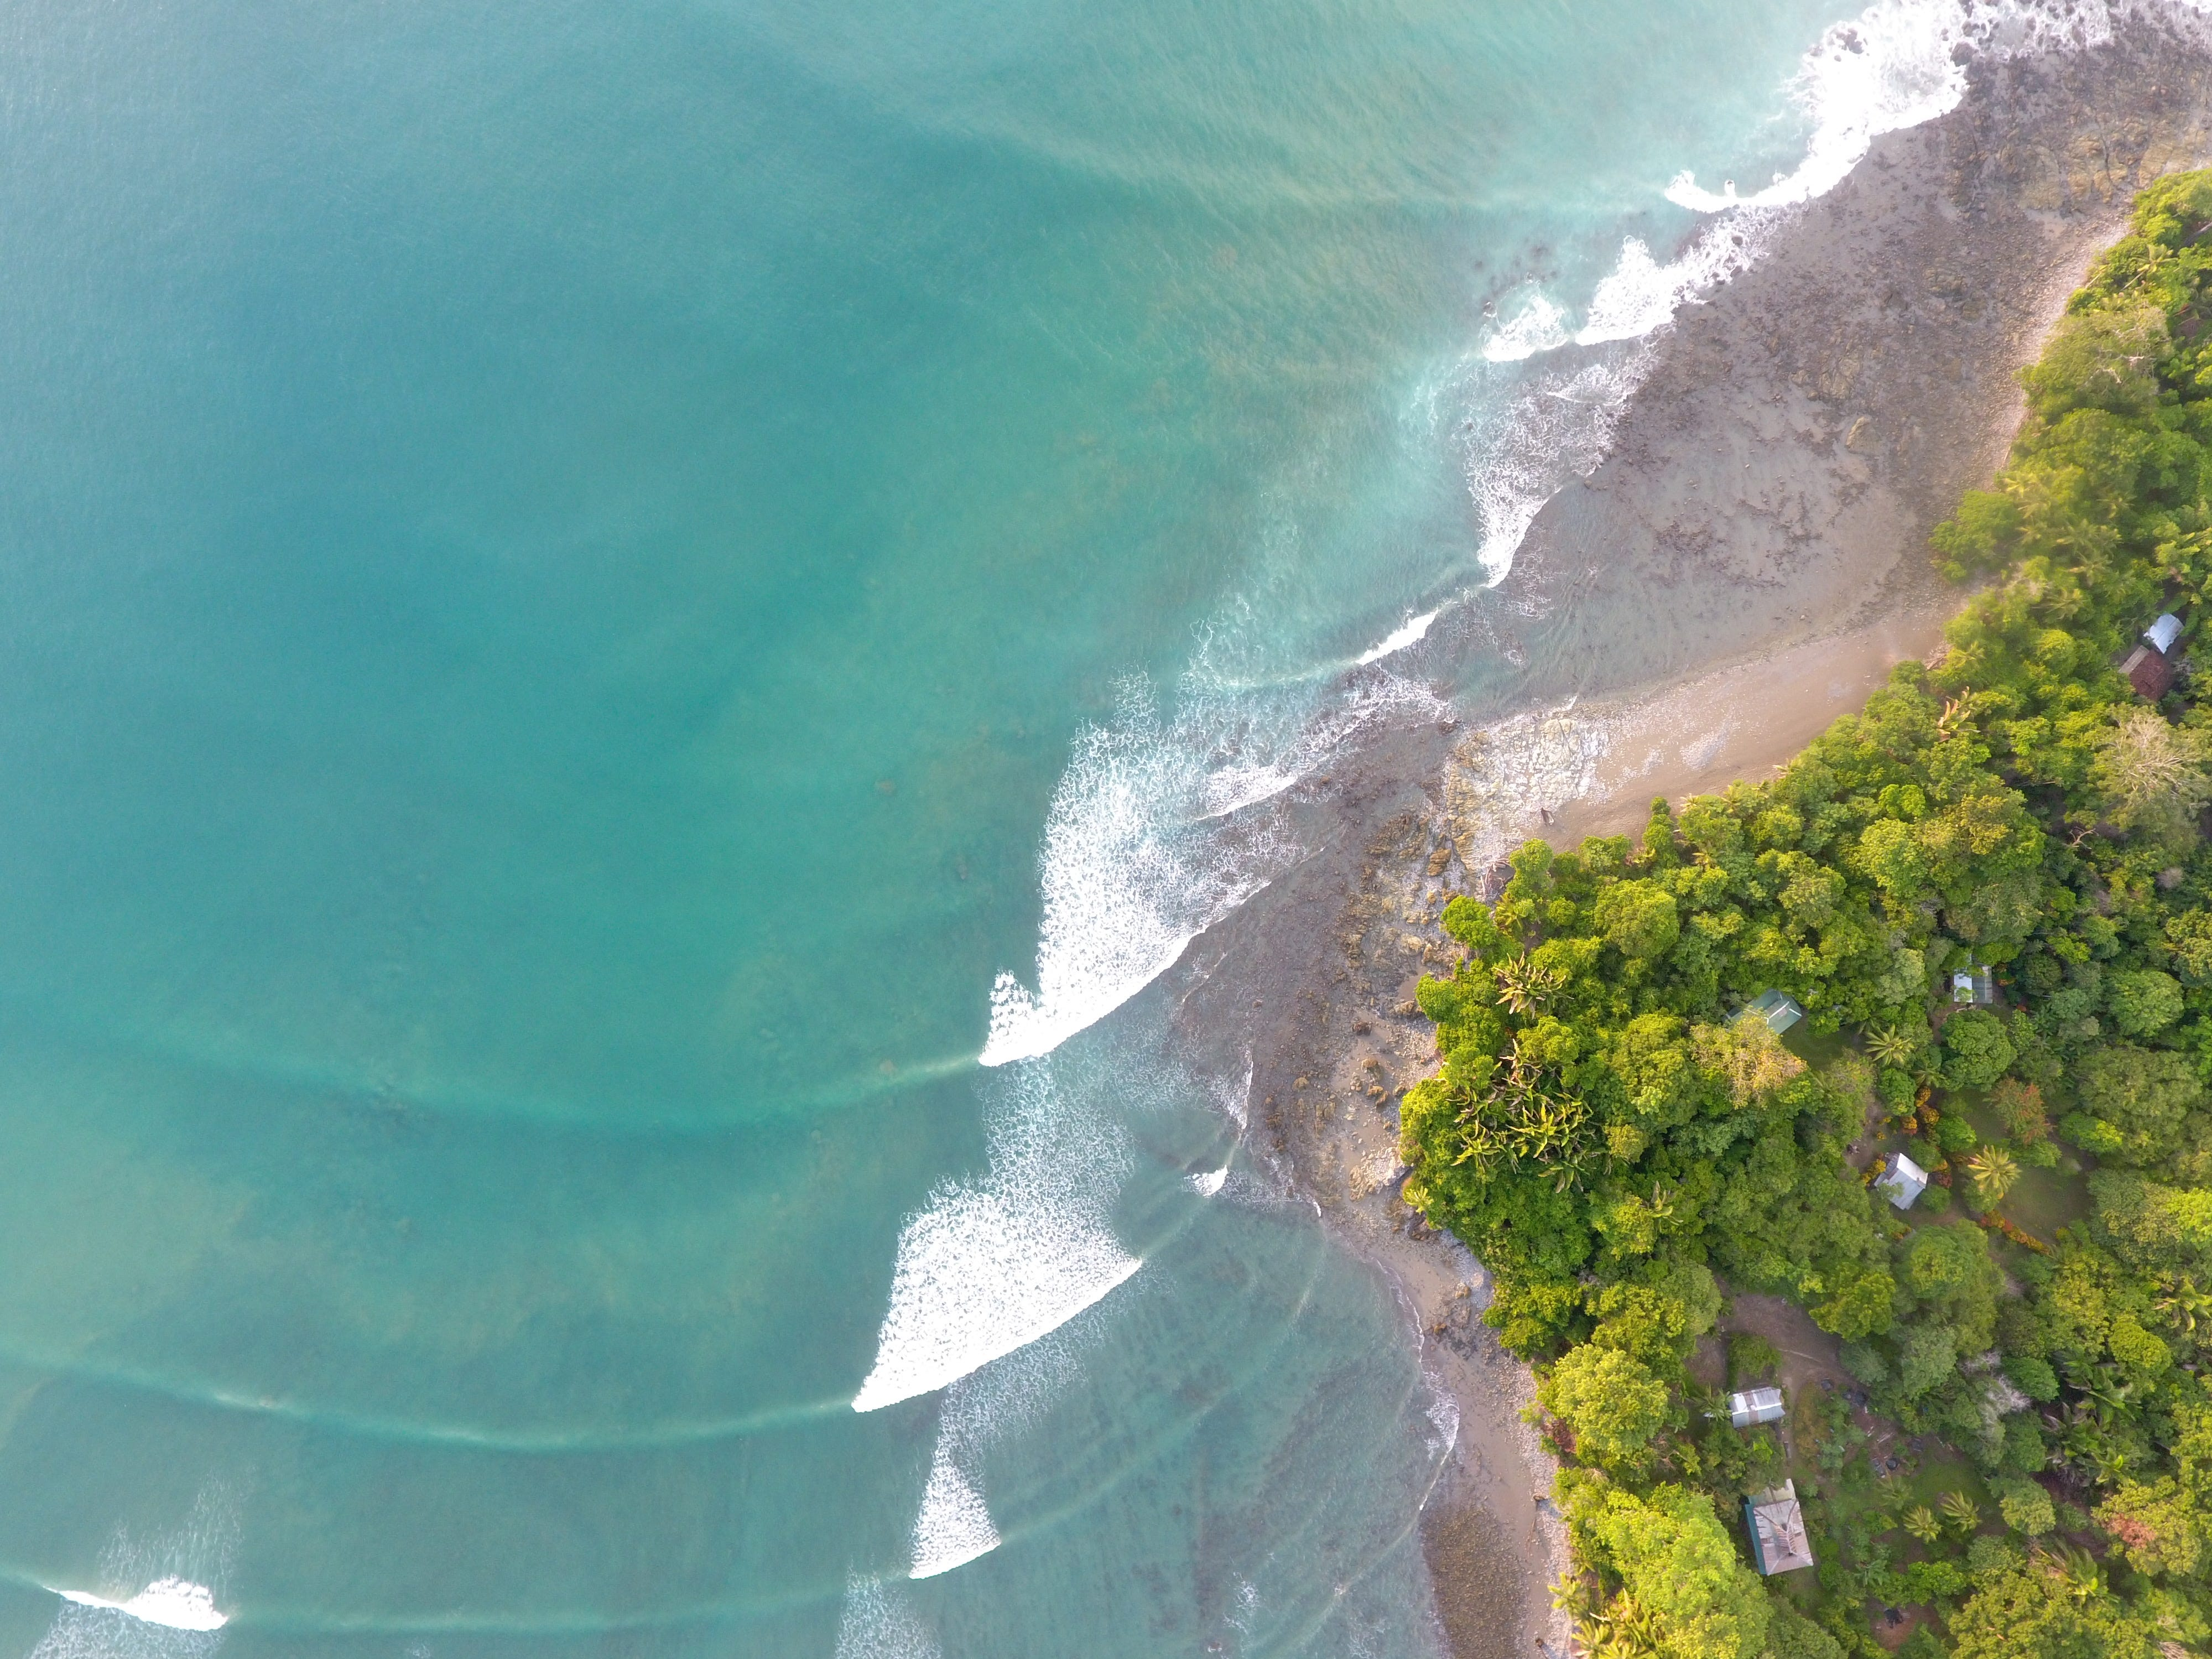 Located on the Osa Peninsula, the 17-bungalow Lapa Rios Lodge has been recognized for its commitment to sustainability and is a founding member of National Geographic Lodges of the World.